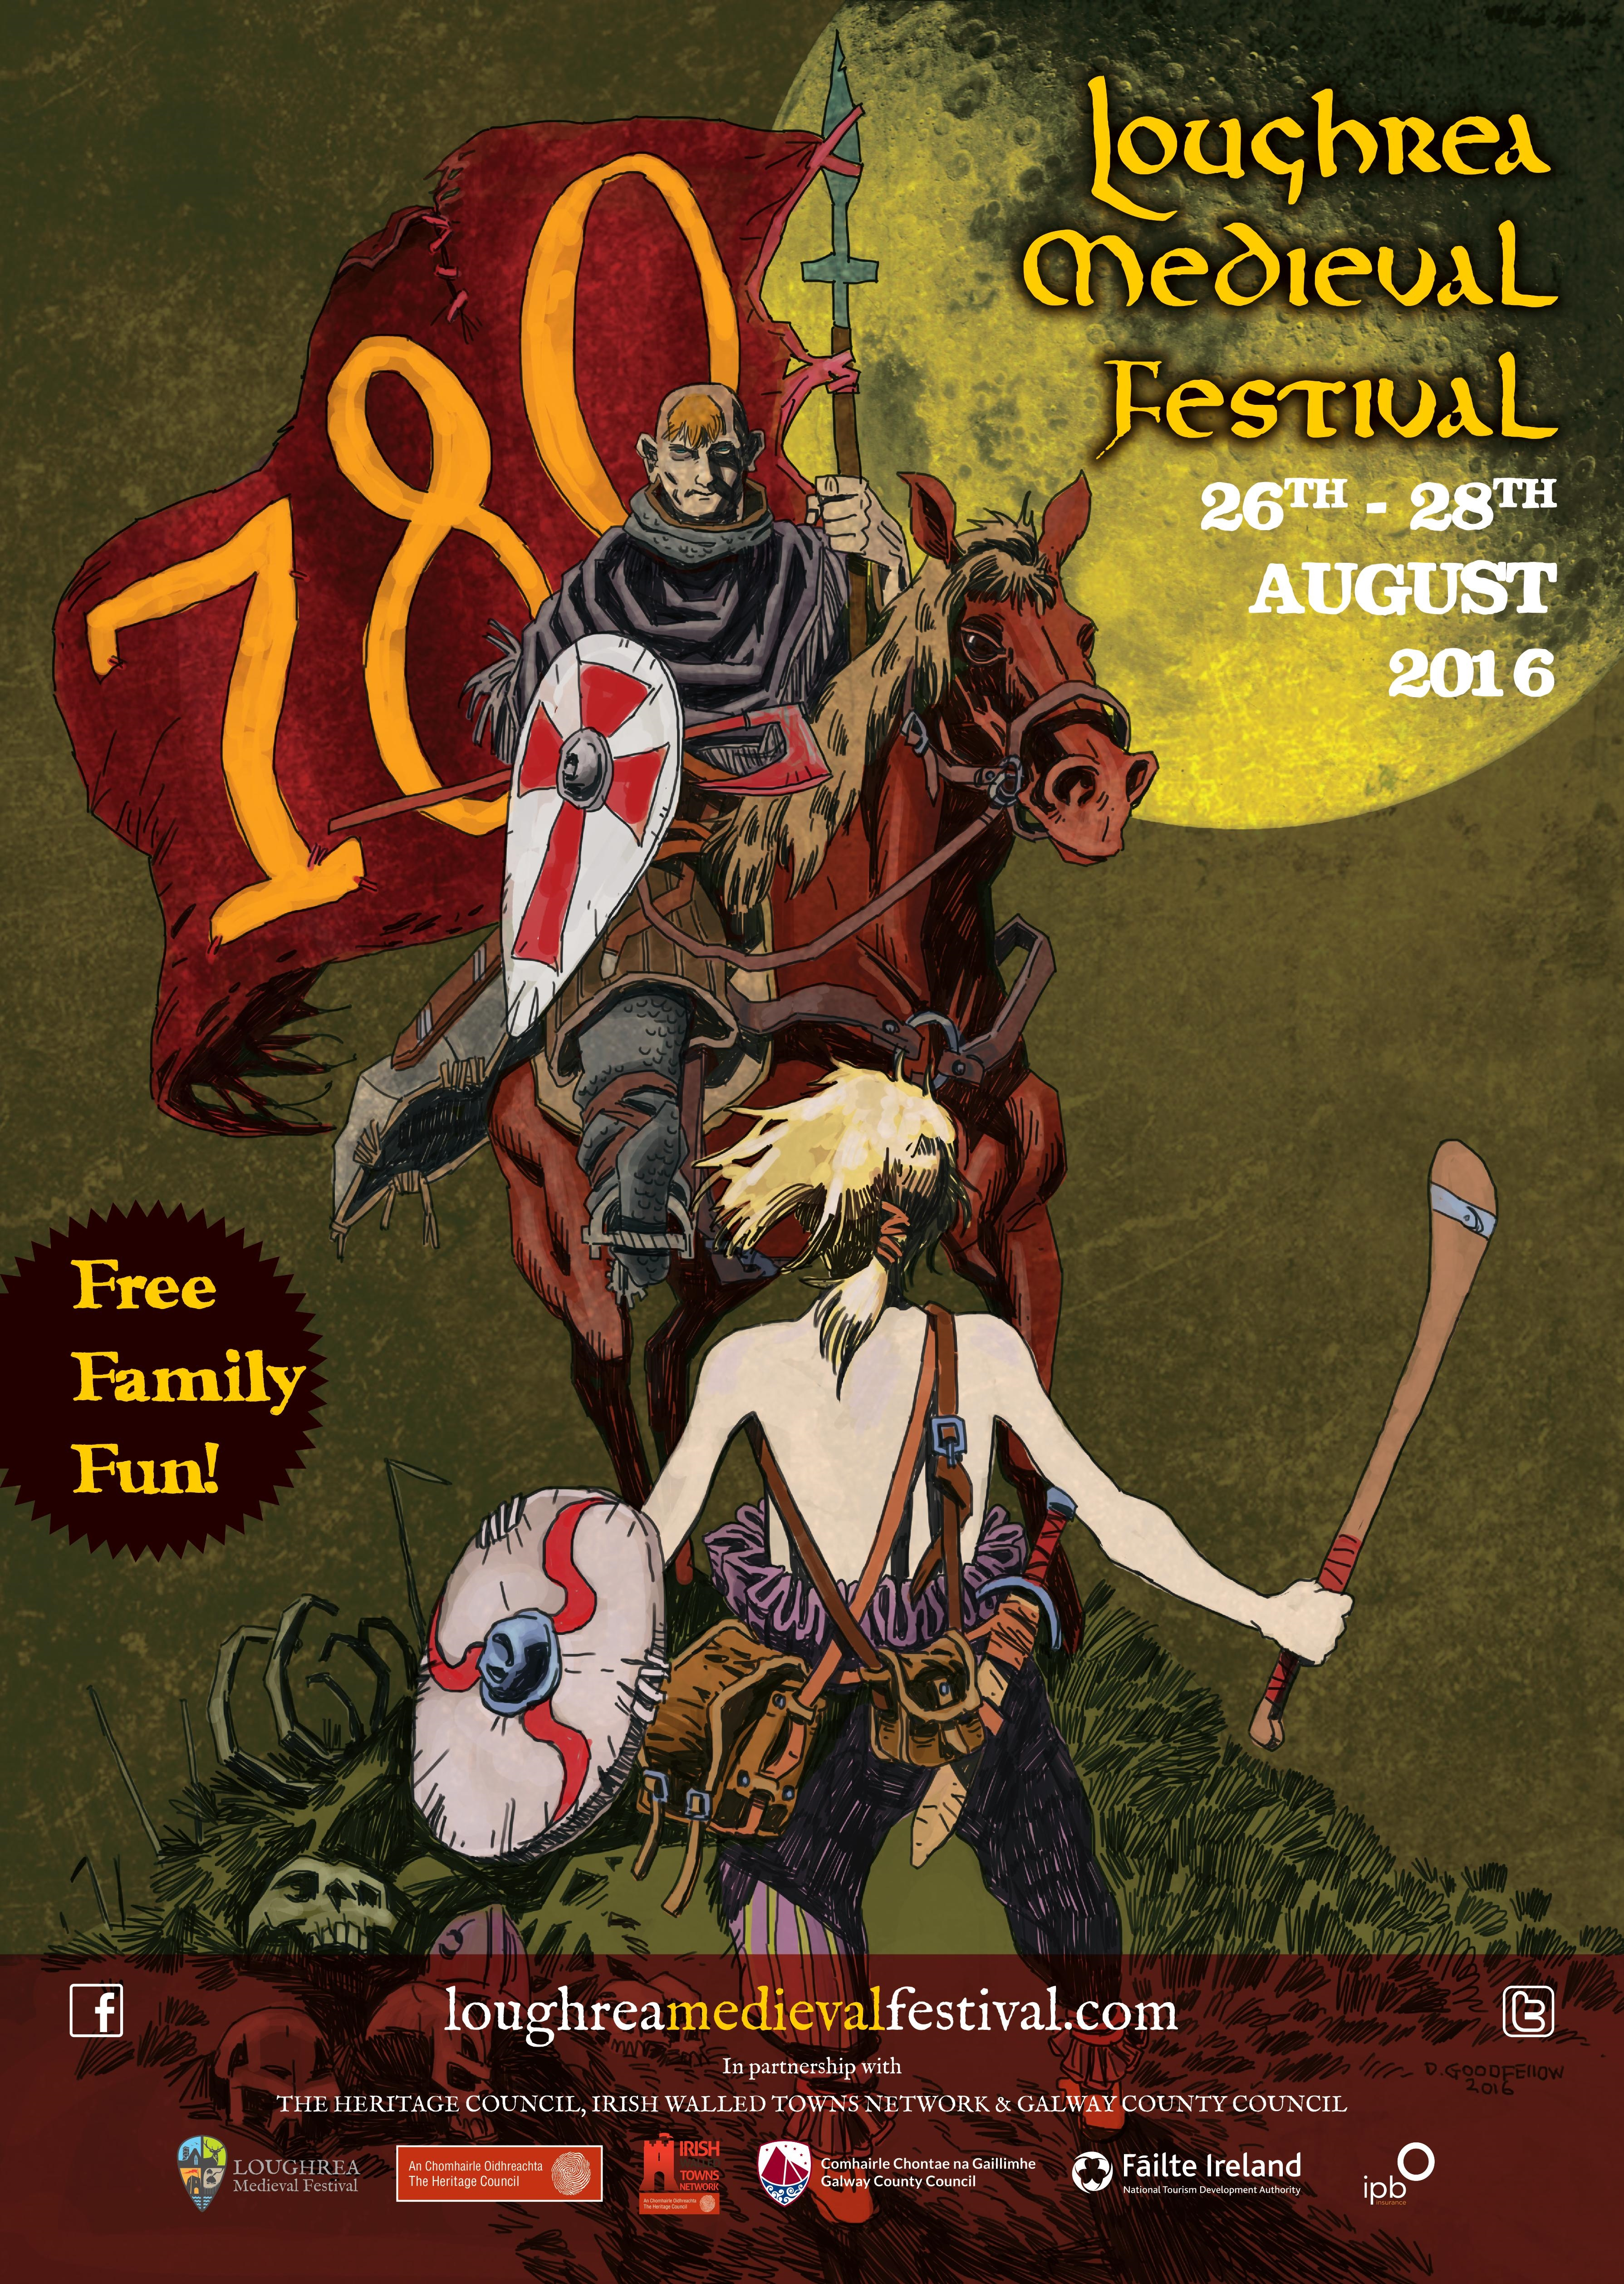 Poster design galway - Loughrea Medieval Festival 2016 Poster